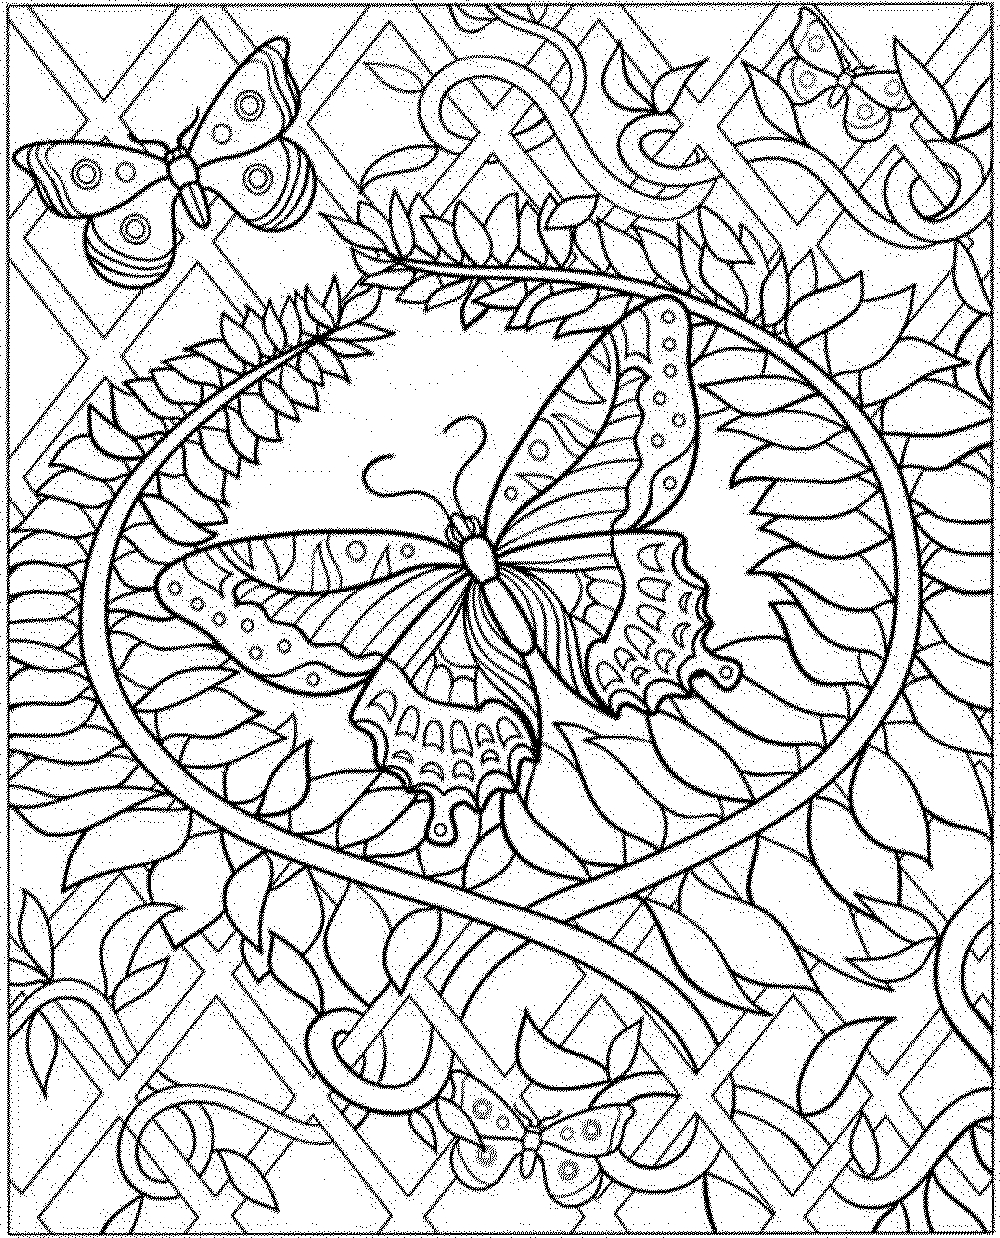 detailed coloring pages for adults - detailed coloring pages for adults inappropriate sketch templates